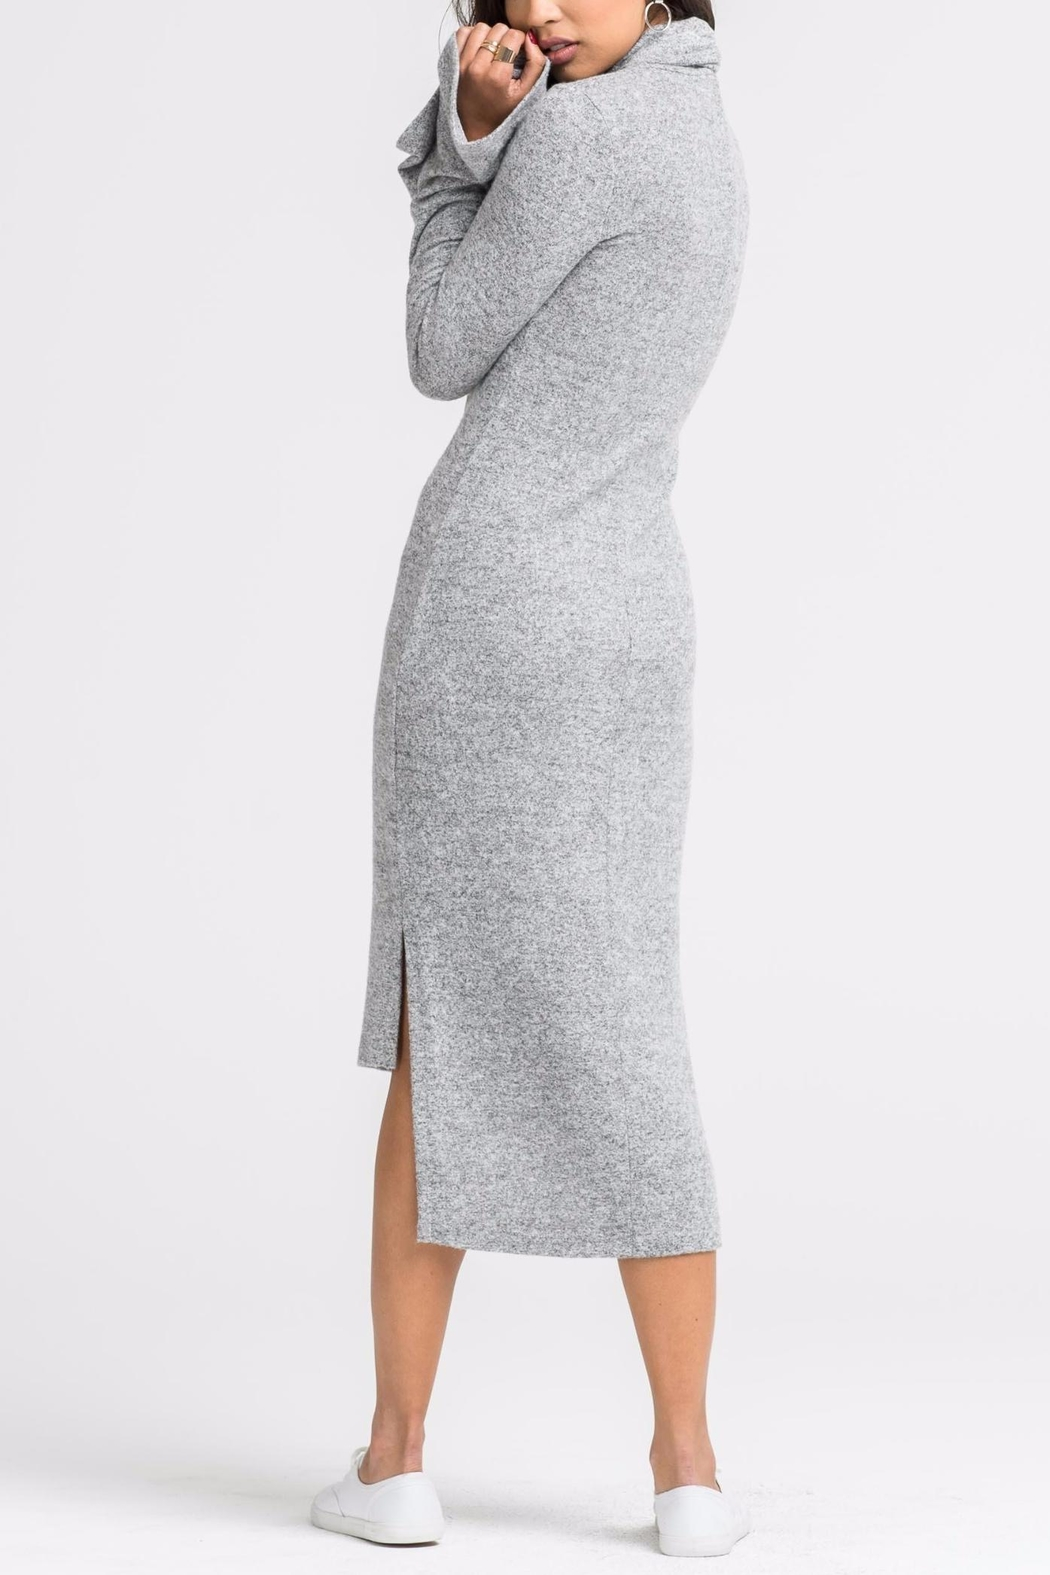 Lush Camille Sweater Dress - Side Cropped Image